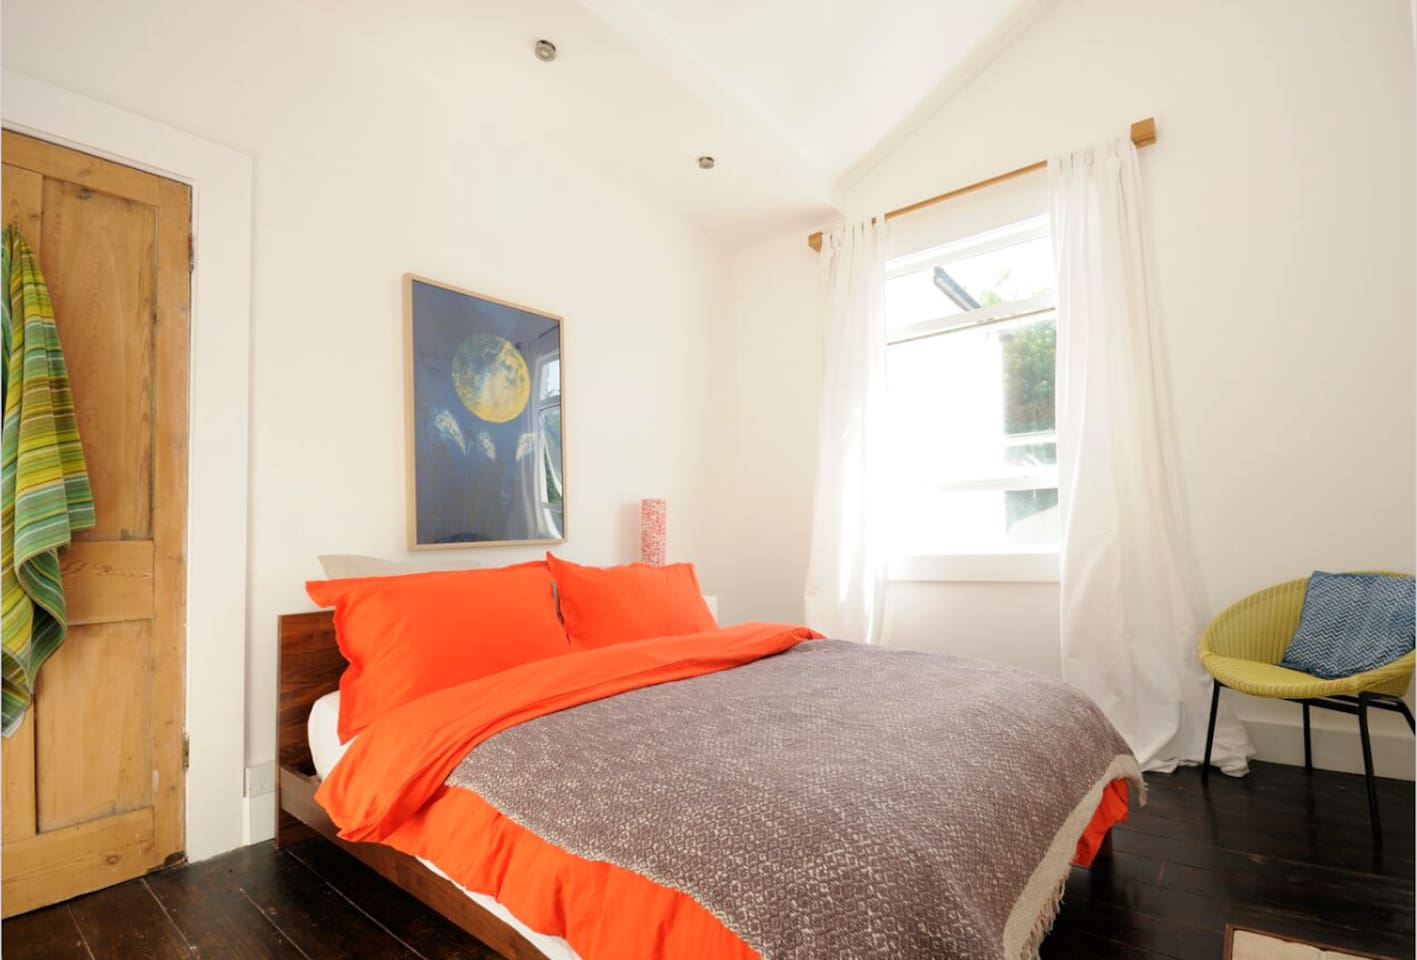 Light and airy double room overlooks garden